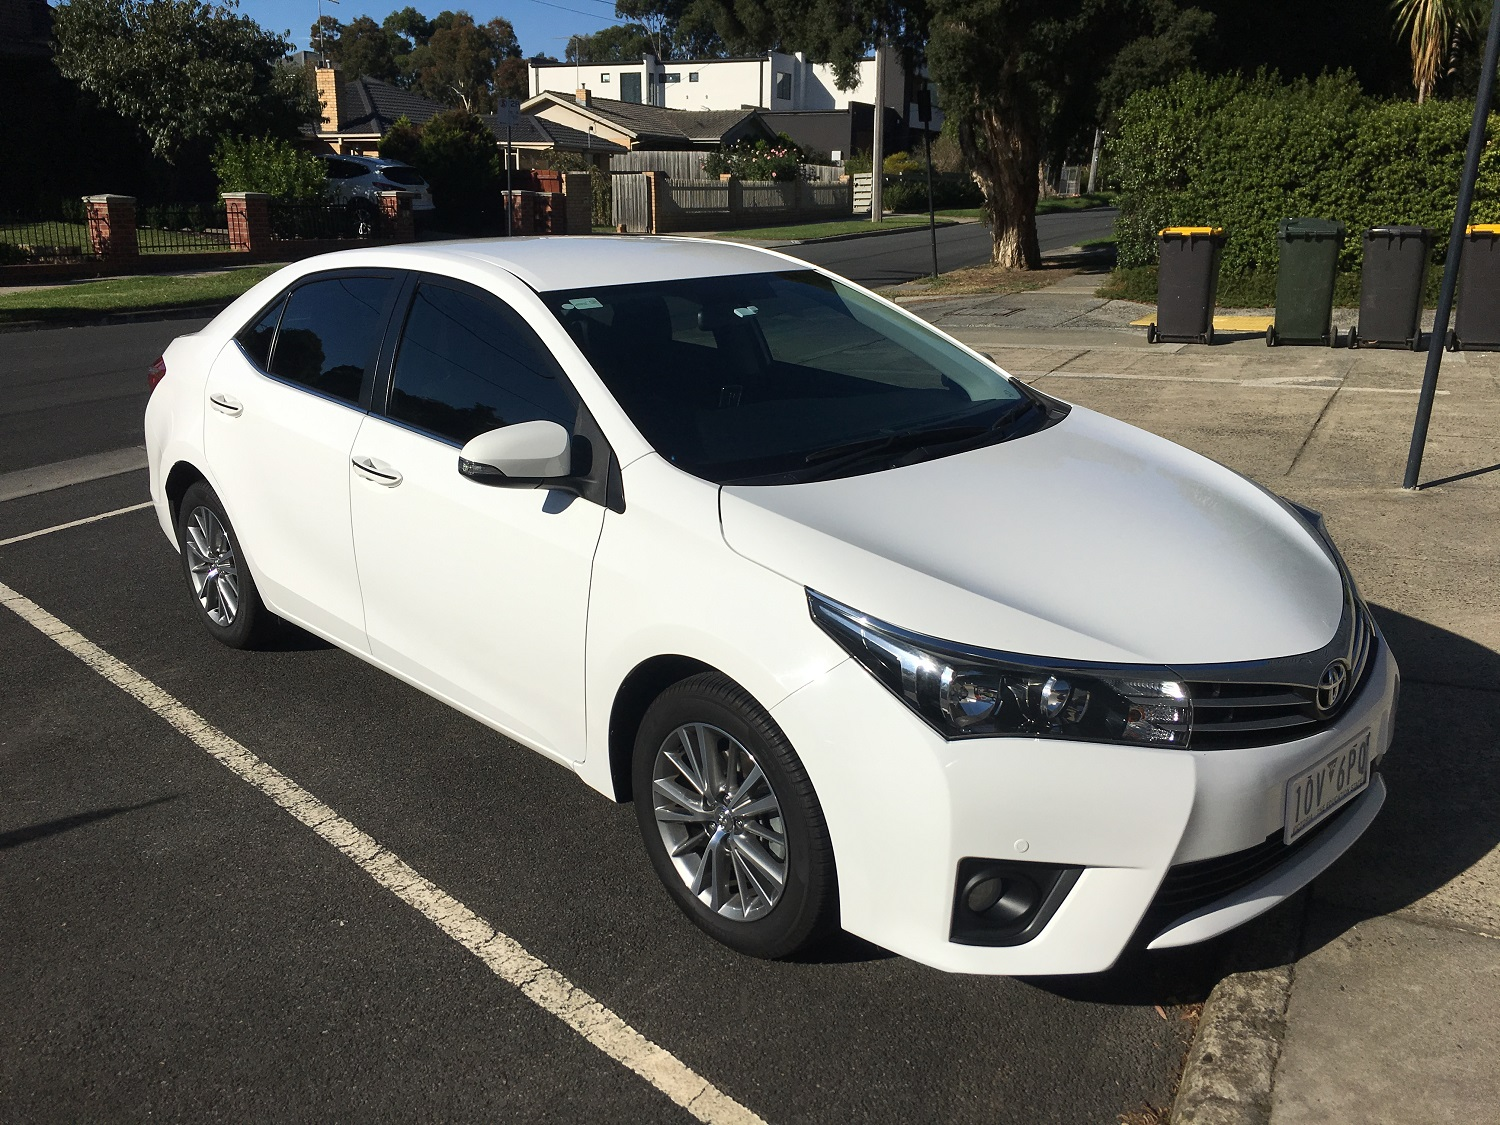 Picture of Kapil's 2015 Toyota Corolla